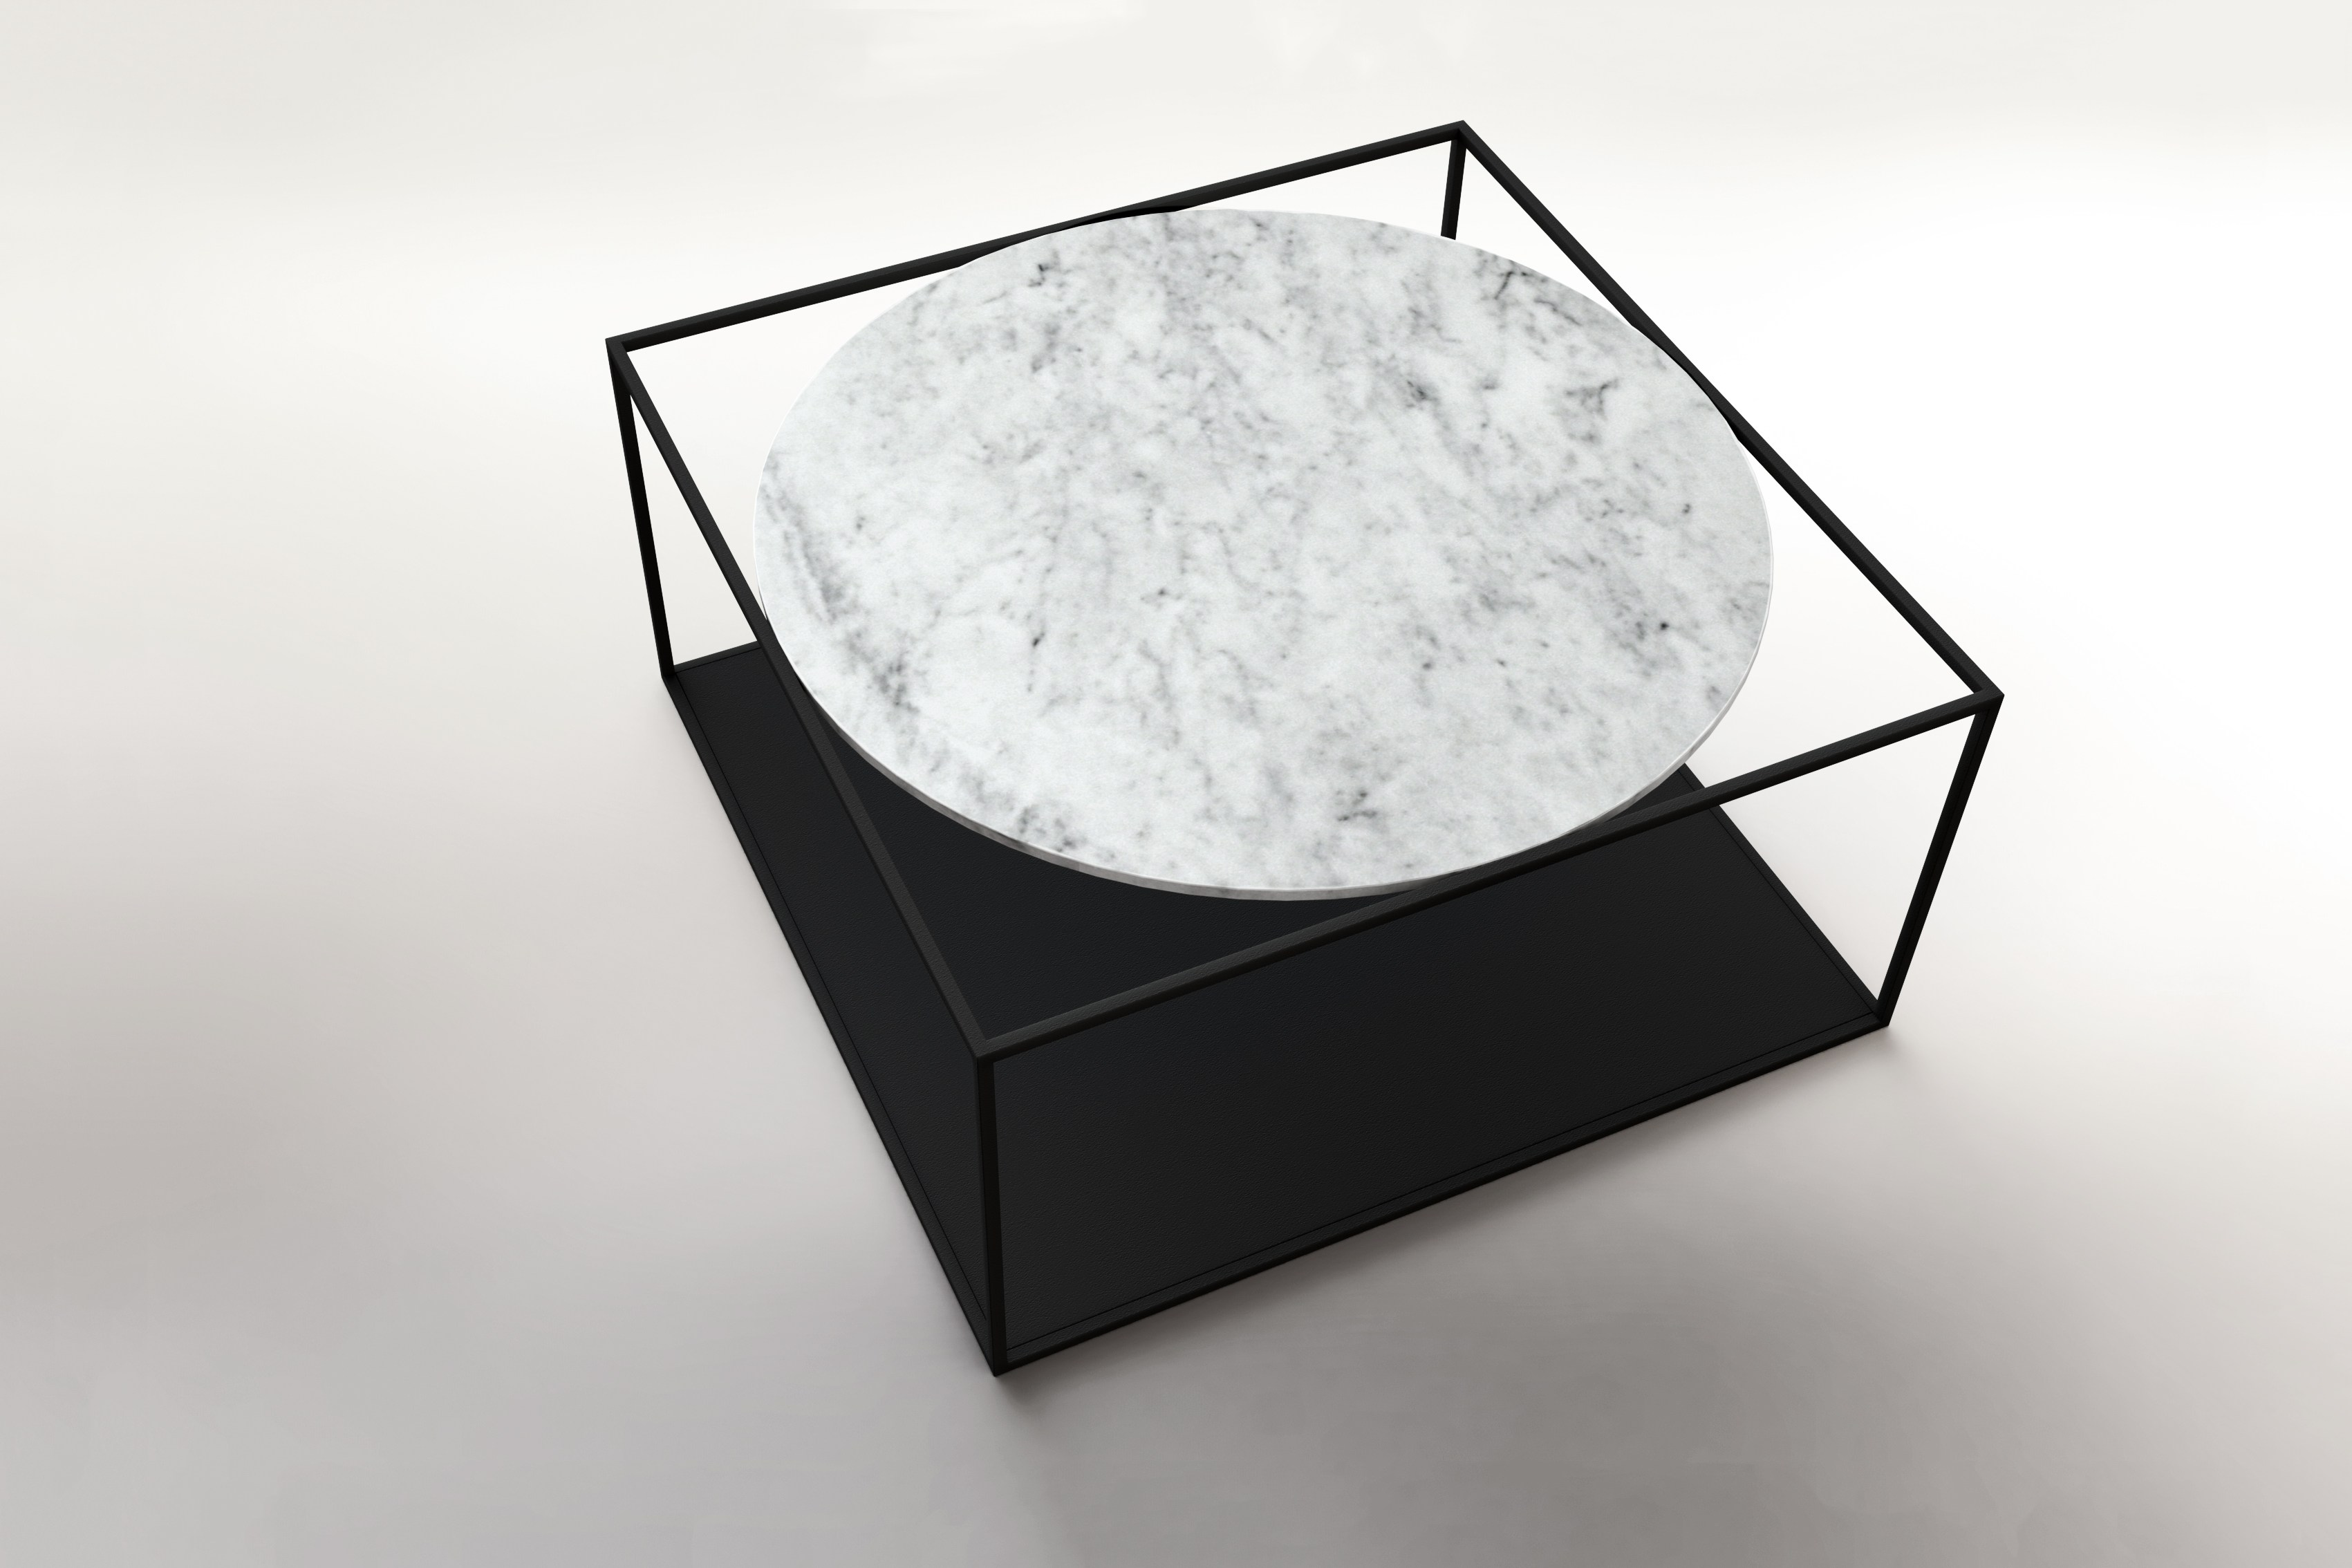 G3 marble coffee table by roche bobois design johan lindst n - Table basse roche bobois ...